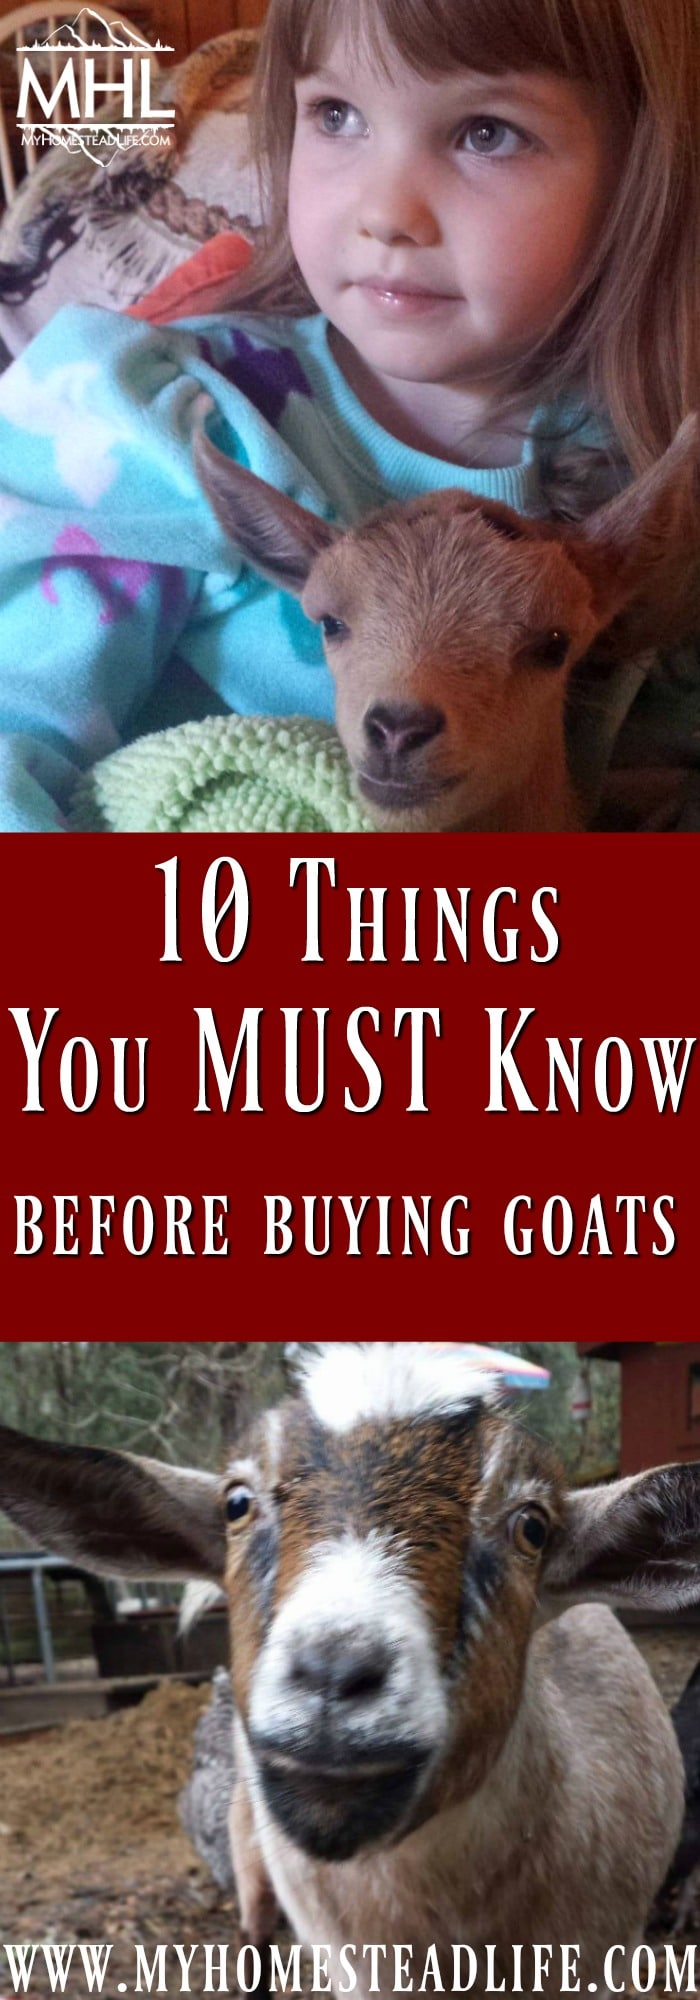 10 Things You MUST Know Before Buying Goats